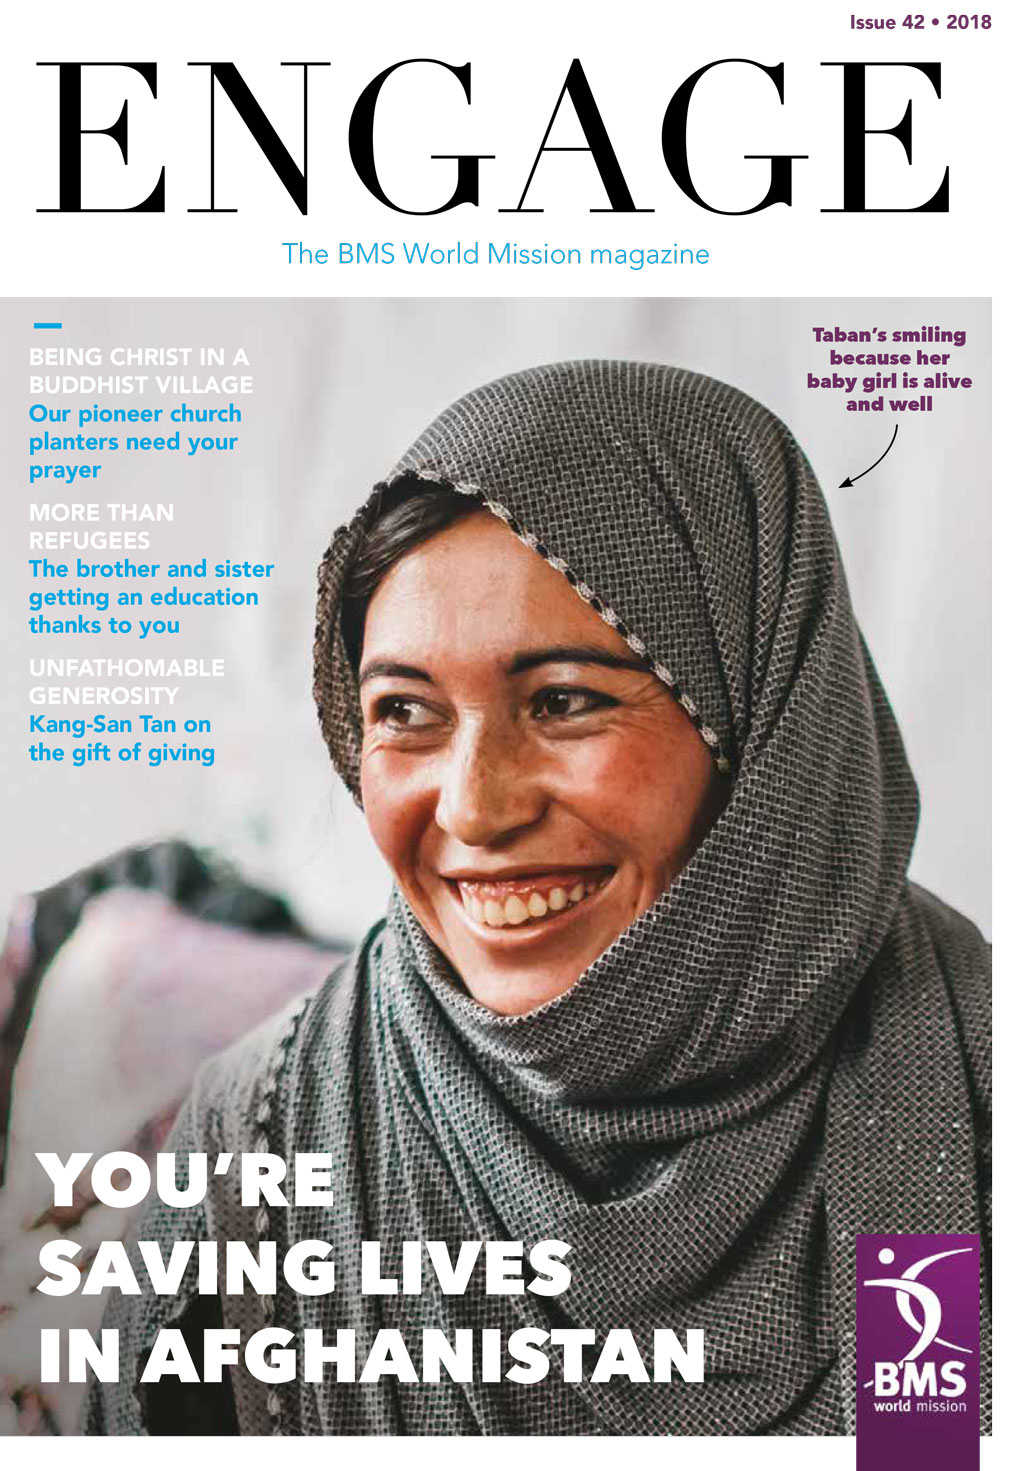 Cover of Engage with photo of a smiling woman. The headline is 'You're saving lives in Afghanistan'